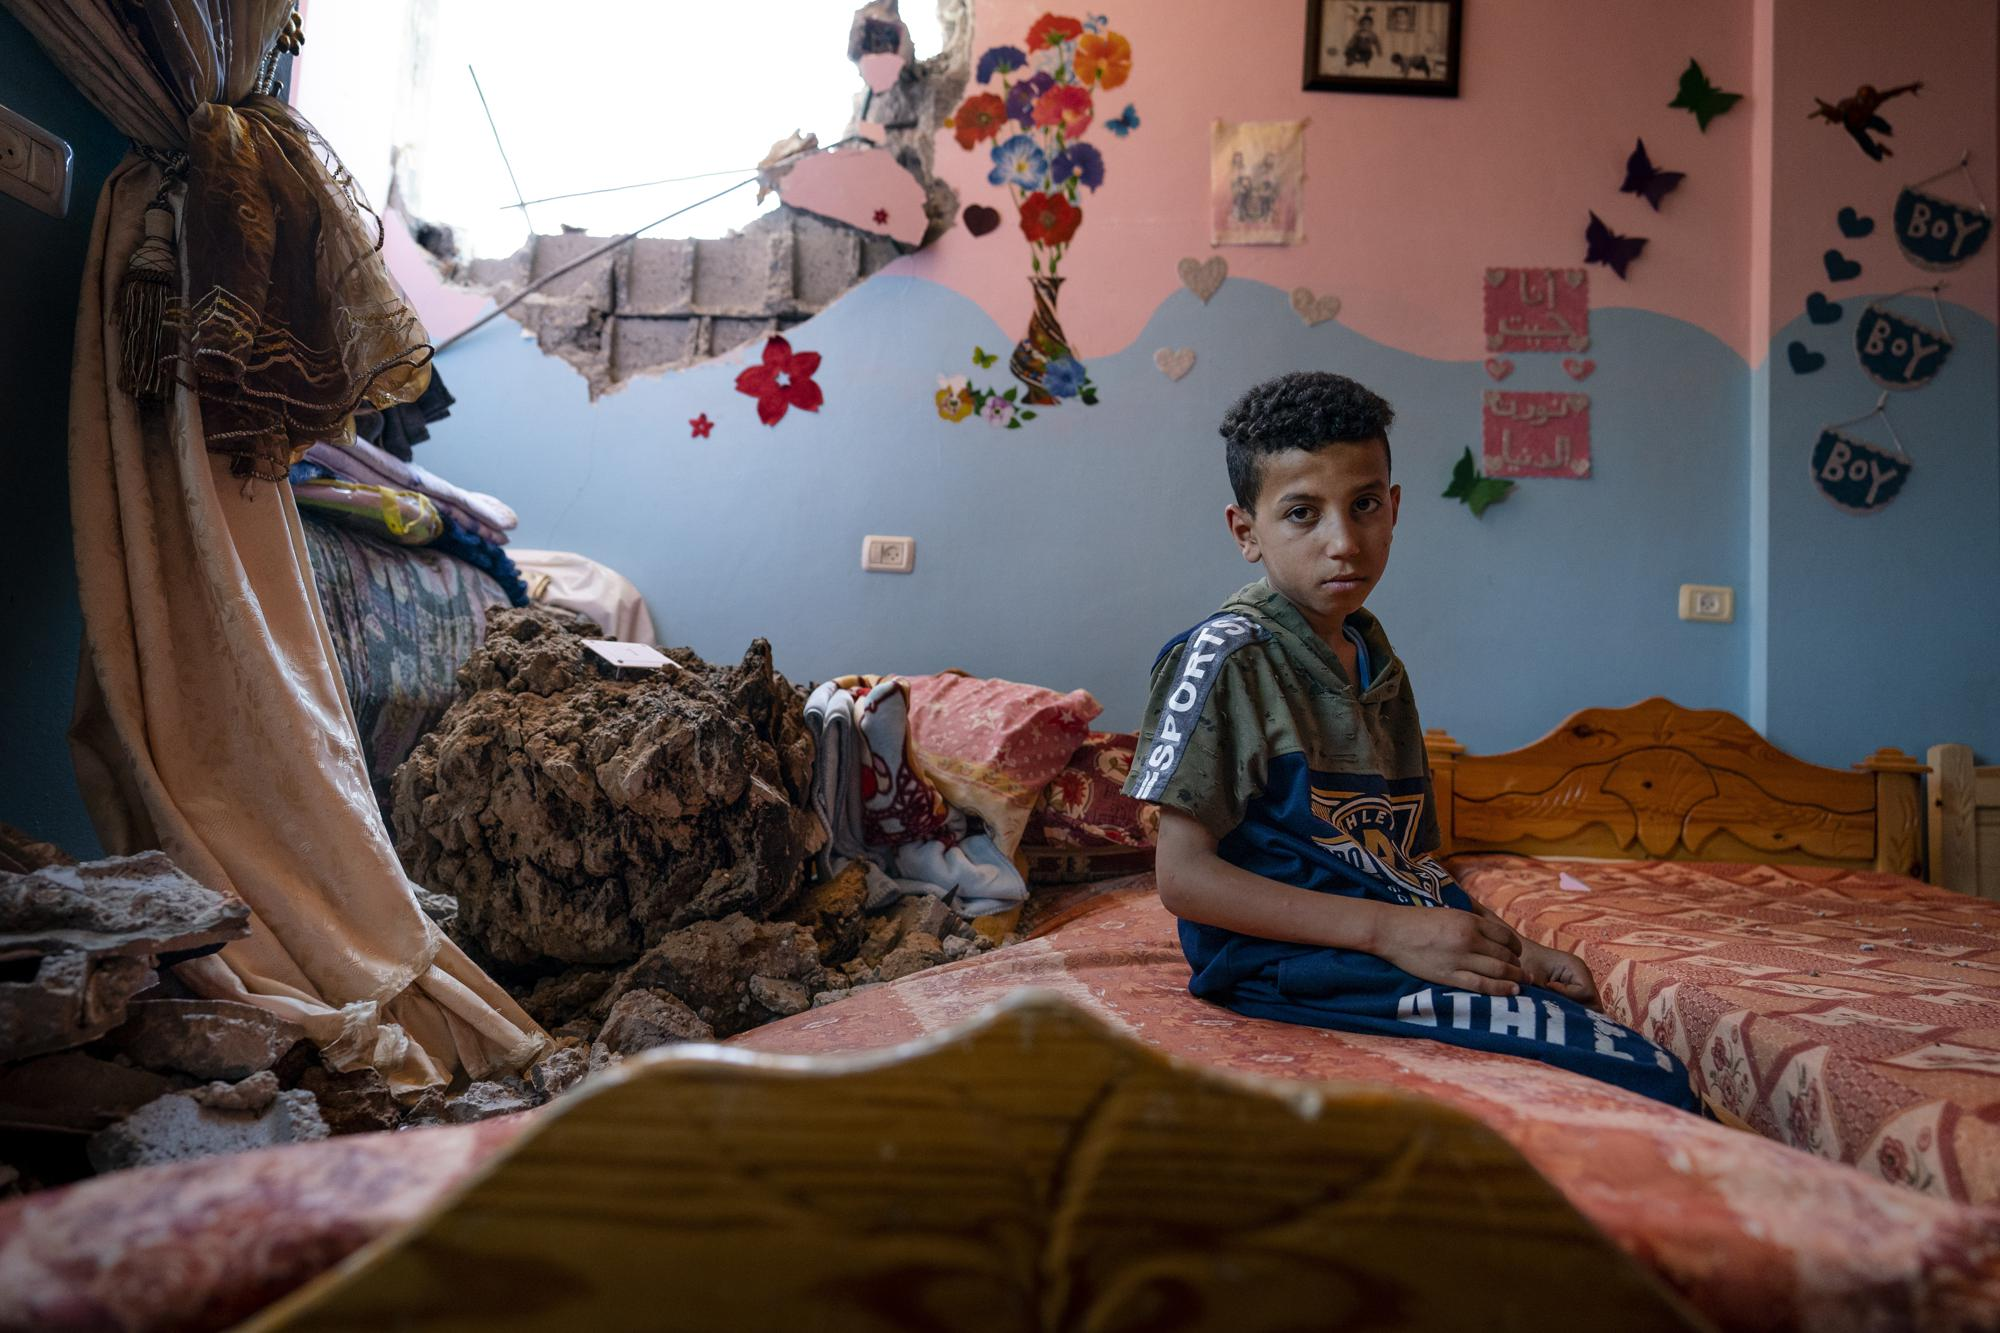 Ibrahim Al-Masri, 10, sits for a portrait in his bedroom that was damaged when an airstrike destroyed the neighboring building prior to a cease-fire that halted an 11-day war between Gaza's Hamas rulers and Israel, Wednesday, May 26, 2021, in Beit Hanoun, Gaza Strip. (AP Photo/John Minchillo)